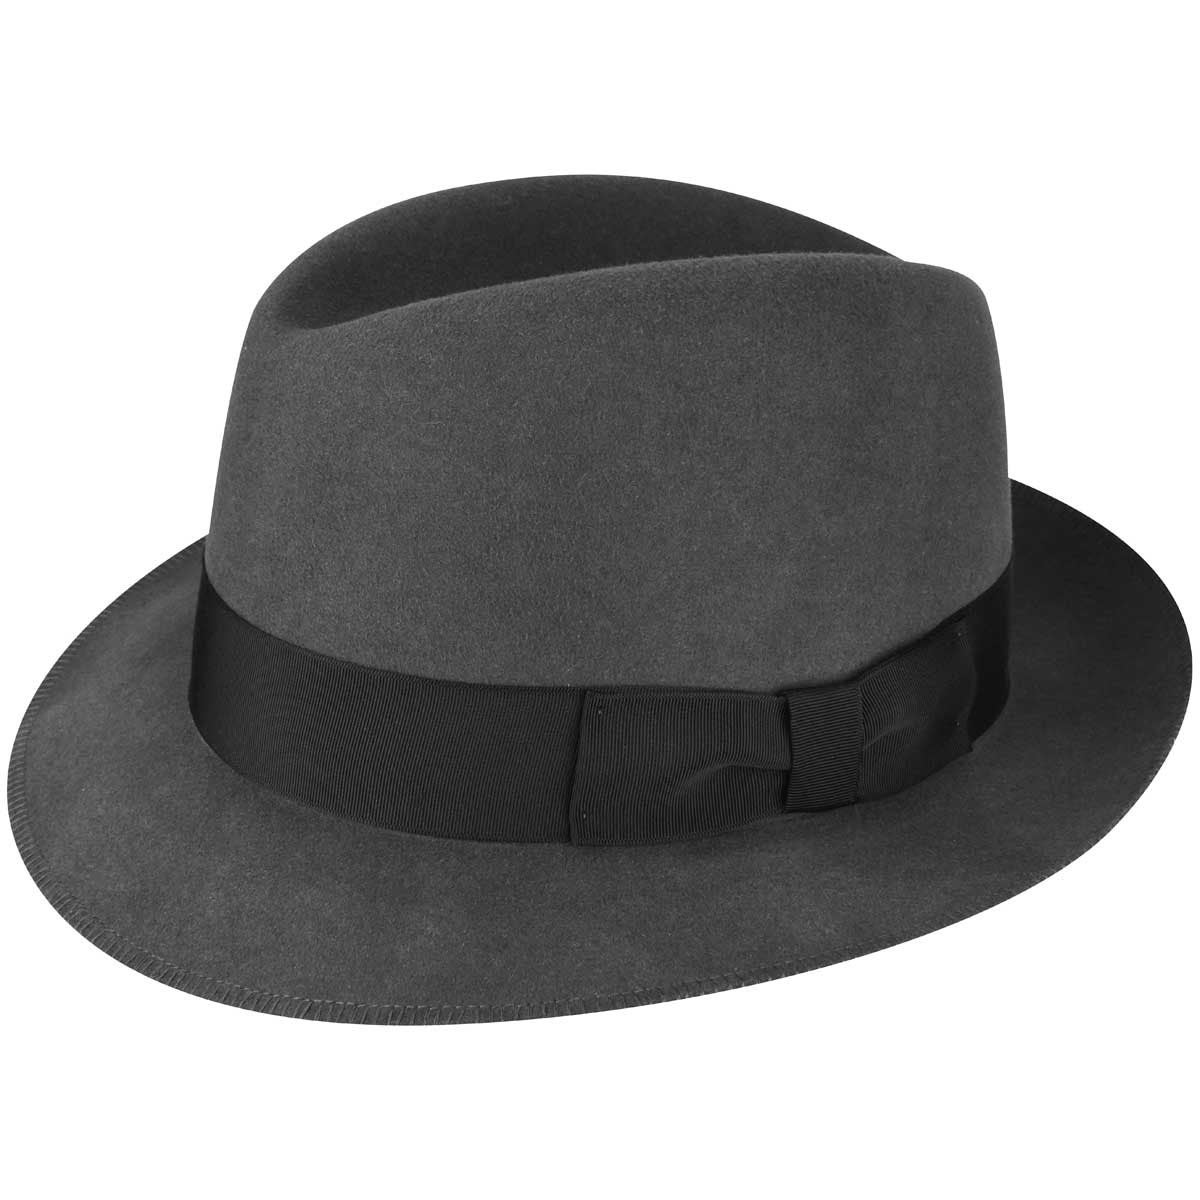 1930s Mens Hat Fashion 1930s Bollman Collection Trilby $100.00 AT vintagedancer.com